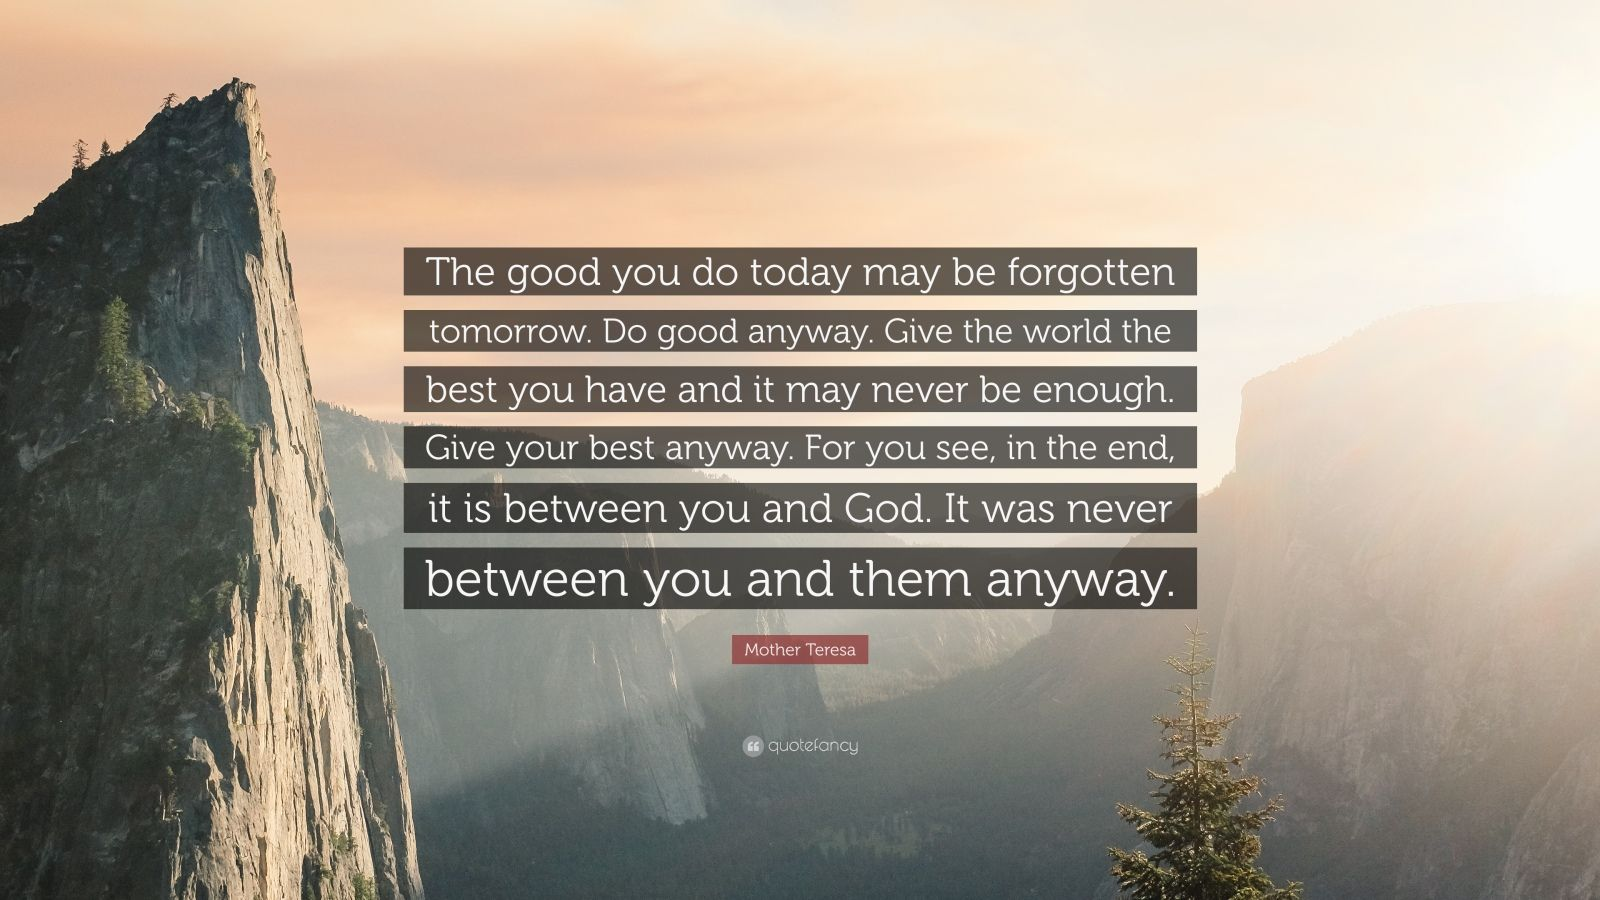 """Mother Teresa Quote: """"The good you do today may be forgotten tomorrow. Do good anyway. Give the world the best you have and it may never be enough. Give your best anyway. For you see, in the end, it is between you and God. It was never between you and them anyway."""""""